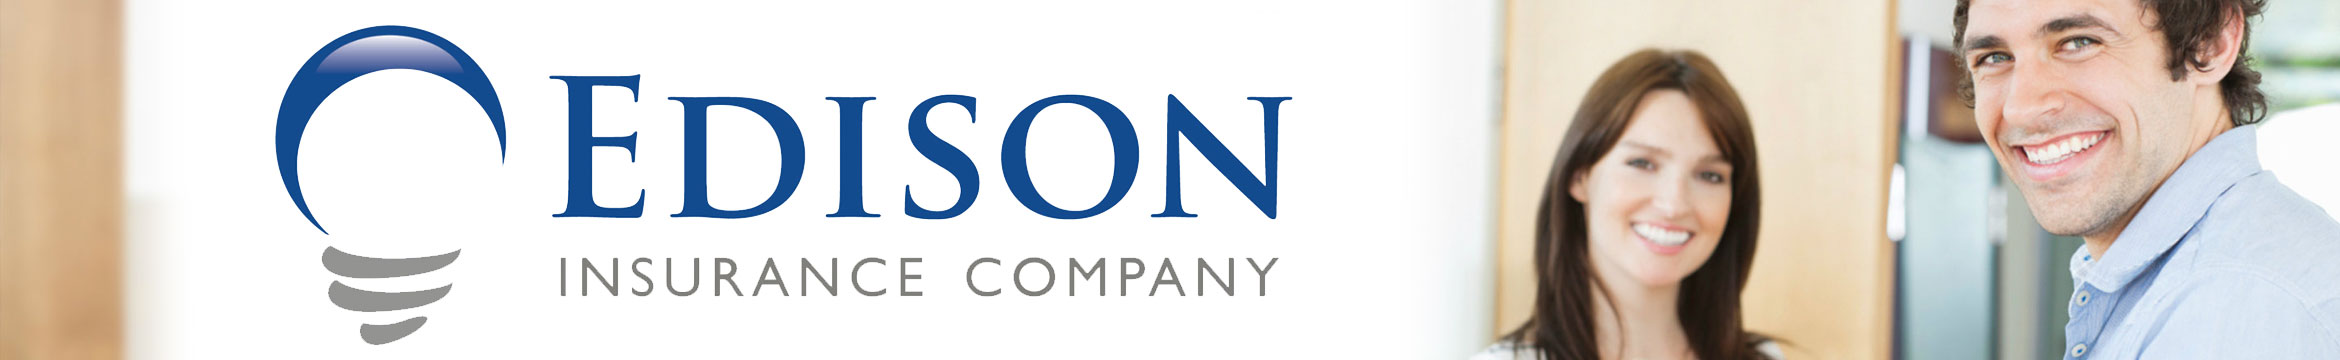 Edison Insurance Company Customer Ratings Clearsurance